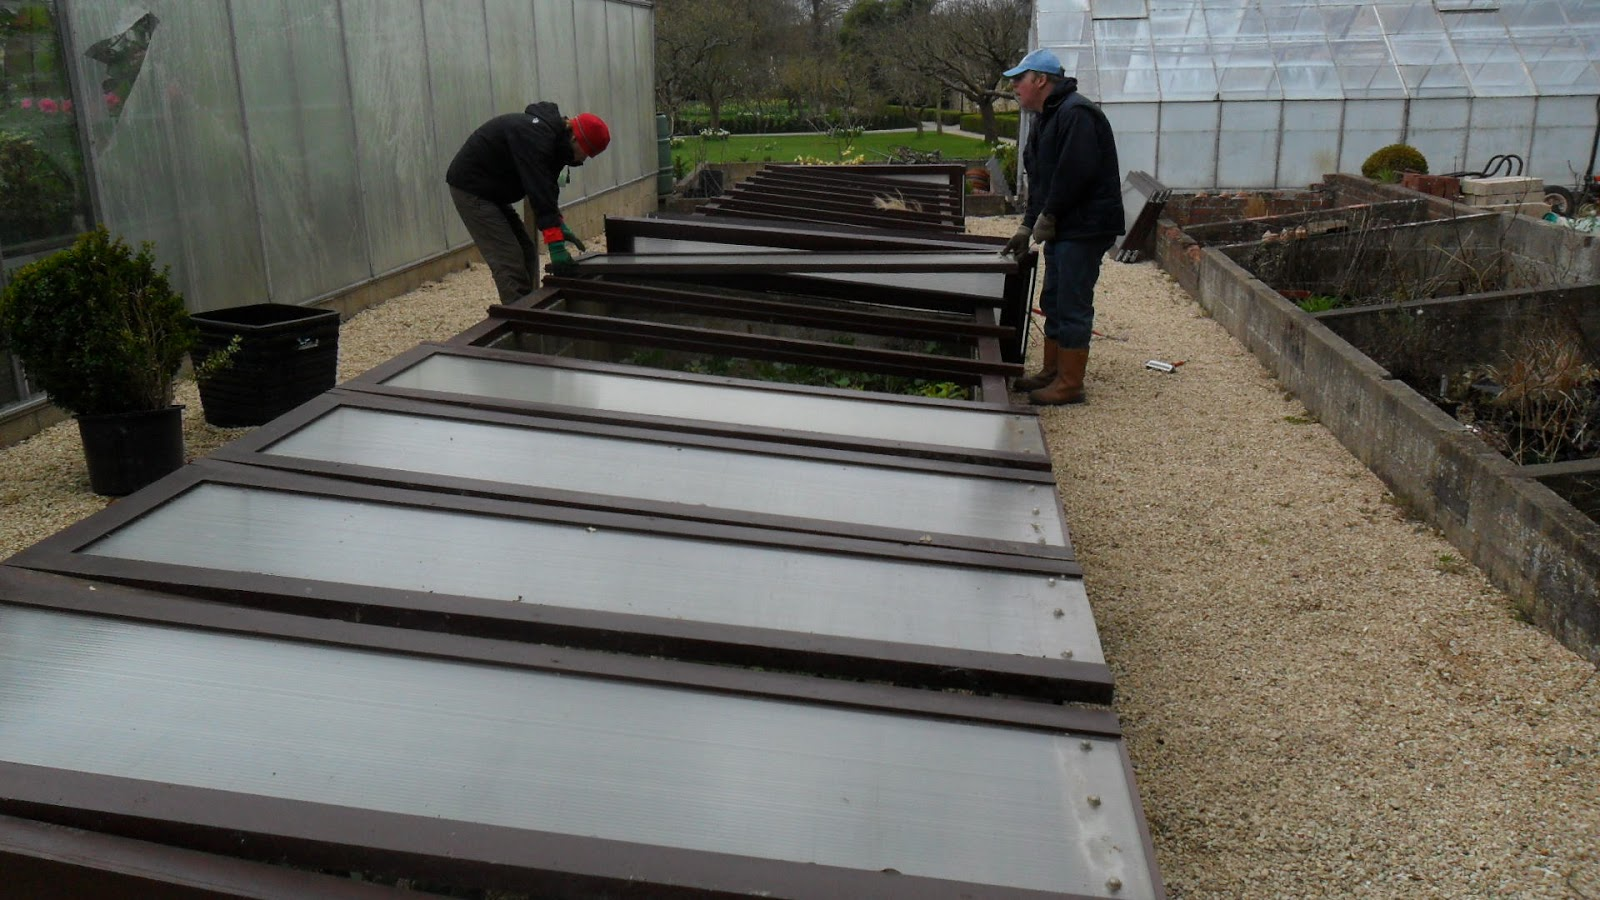 Worcester College Gardeners From Greenhouse To Peach